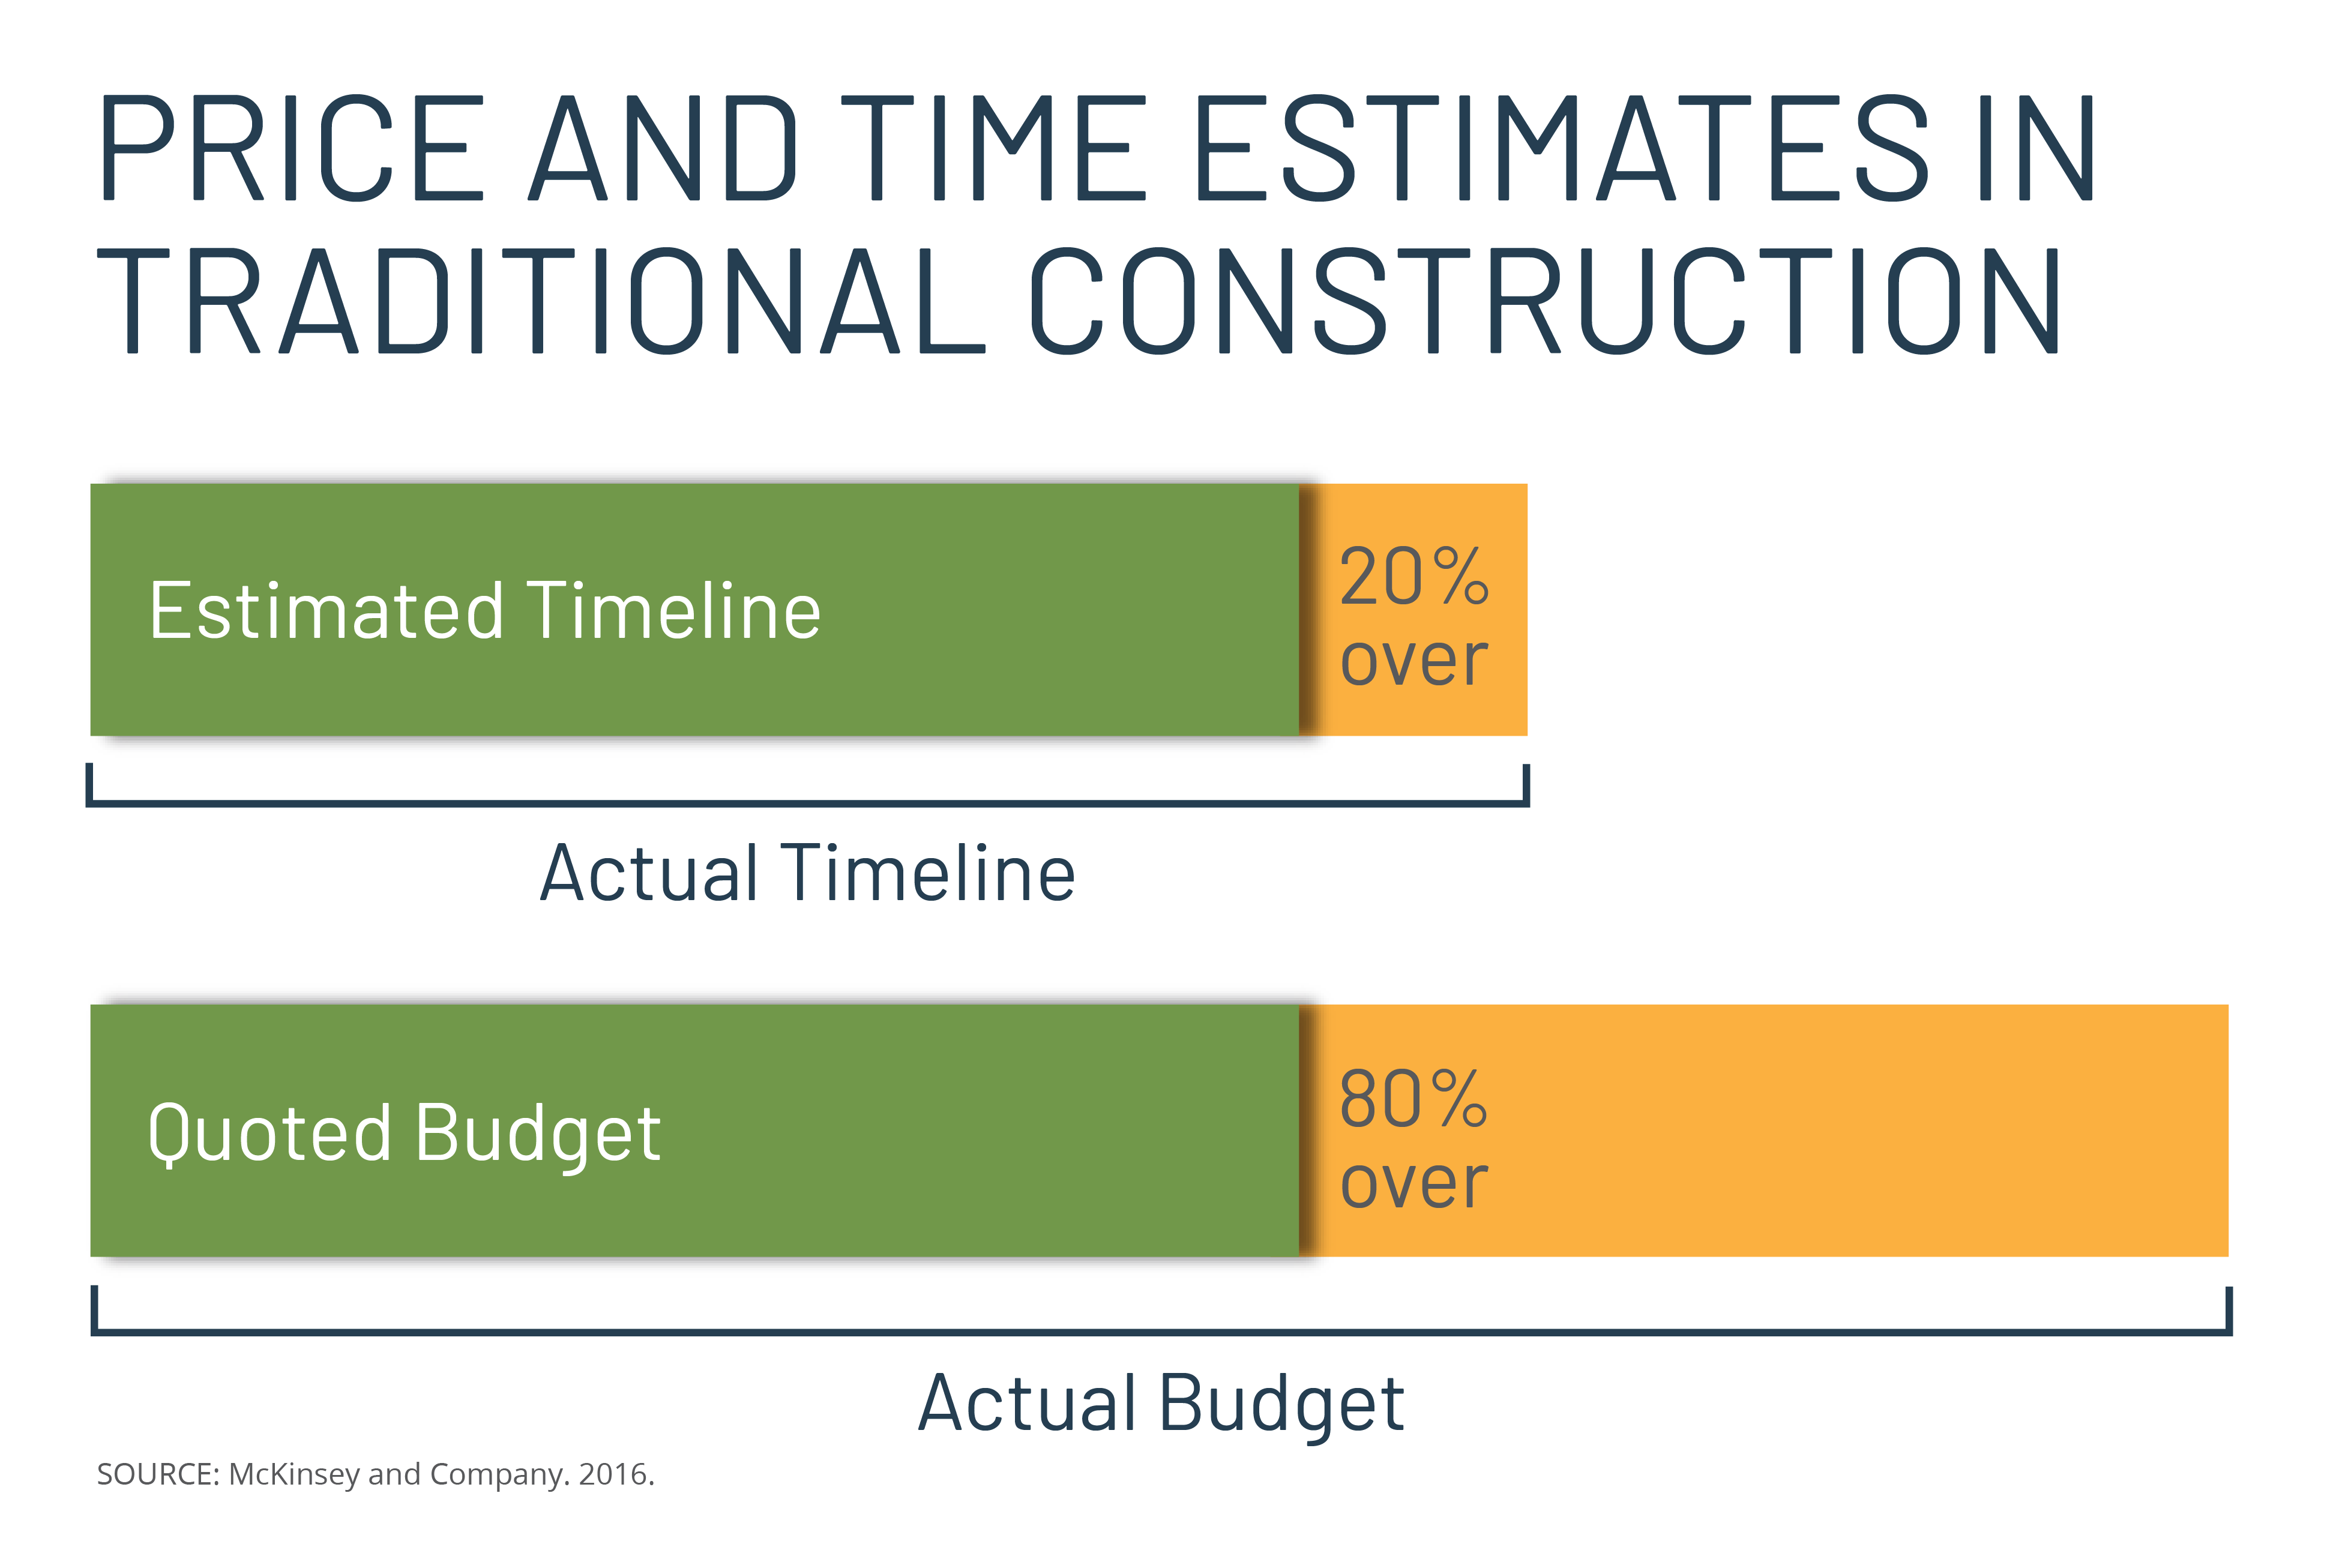 Diagram depicting traditional construction projects going 20% over time and 80% over budget.